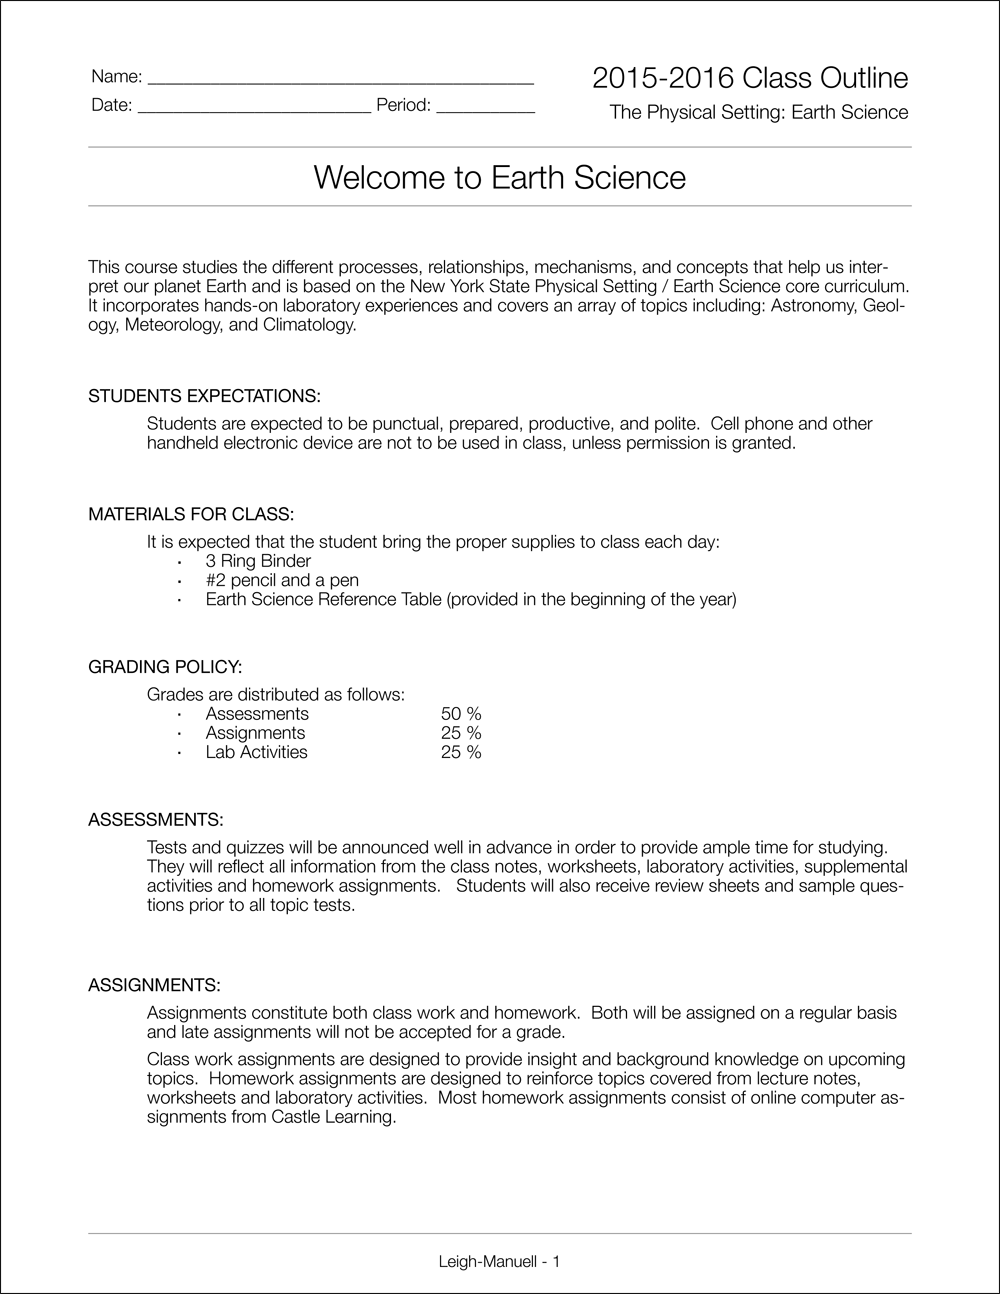 worksheet Holt Earth Science Worksheets exective resume help with my custom reflective essay online science homework for th grade